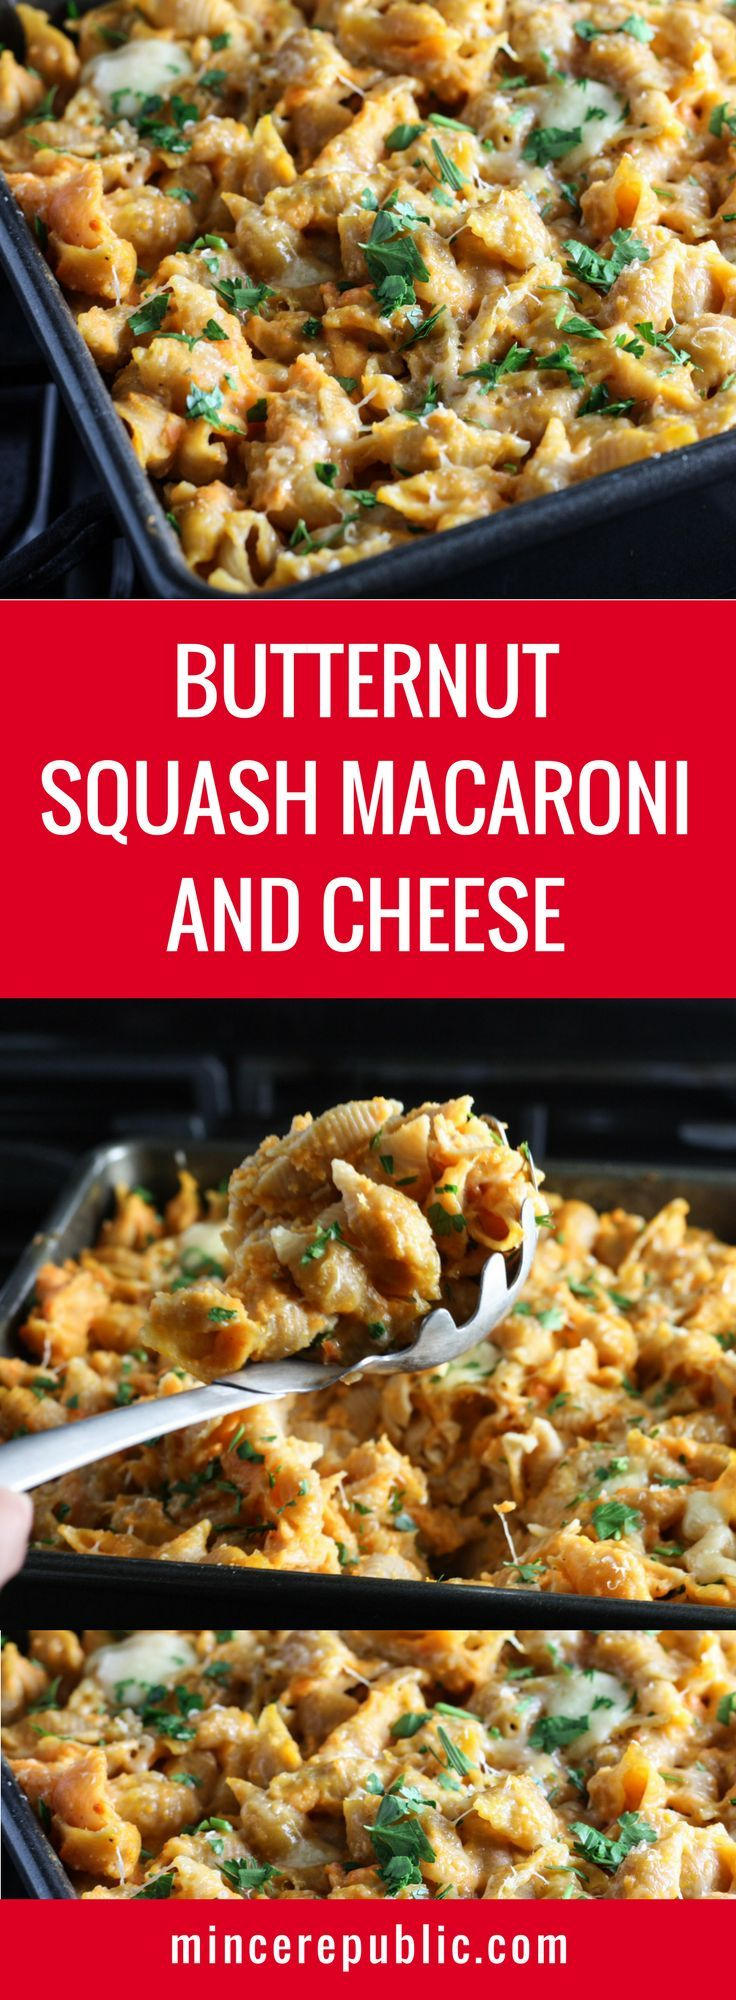 Healthy Butternut Squash Macaroni and Cheese made with whole wheat noodles and a cheese sauce made with Butternut Squash, Cauliflower, Carrots and Cheddar. A healthy twist on a classic favorite. | mincerepublic.com